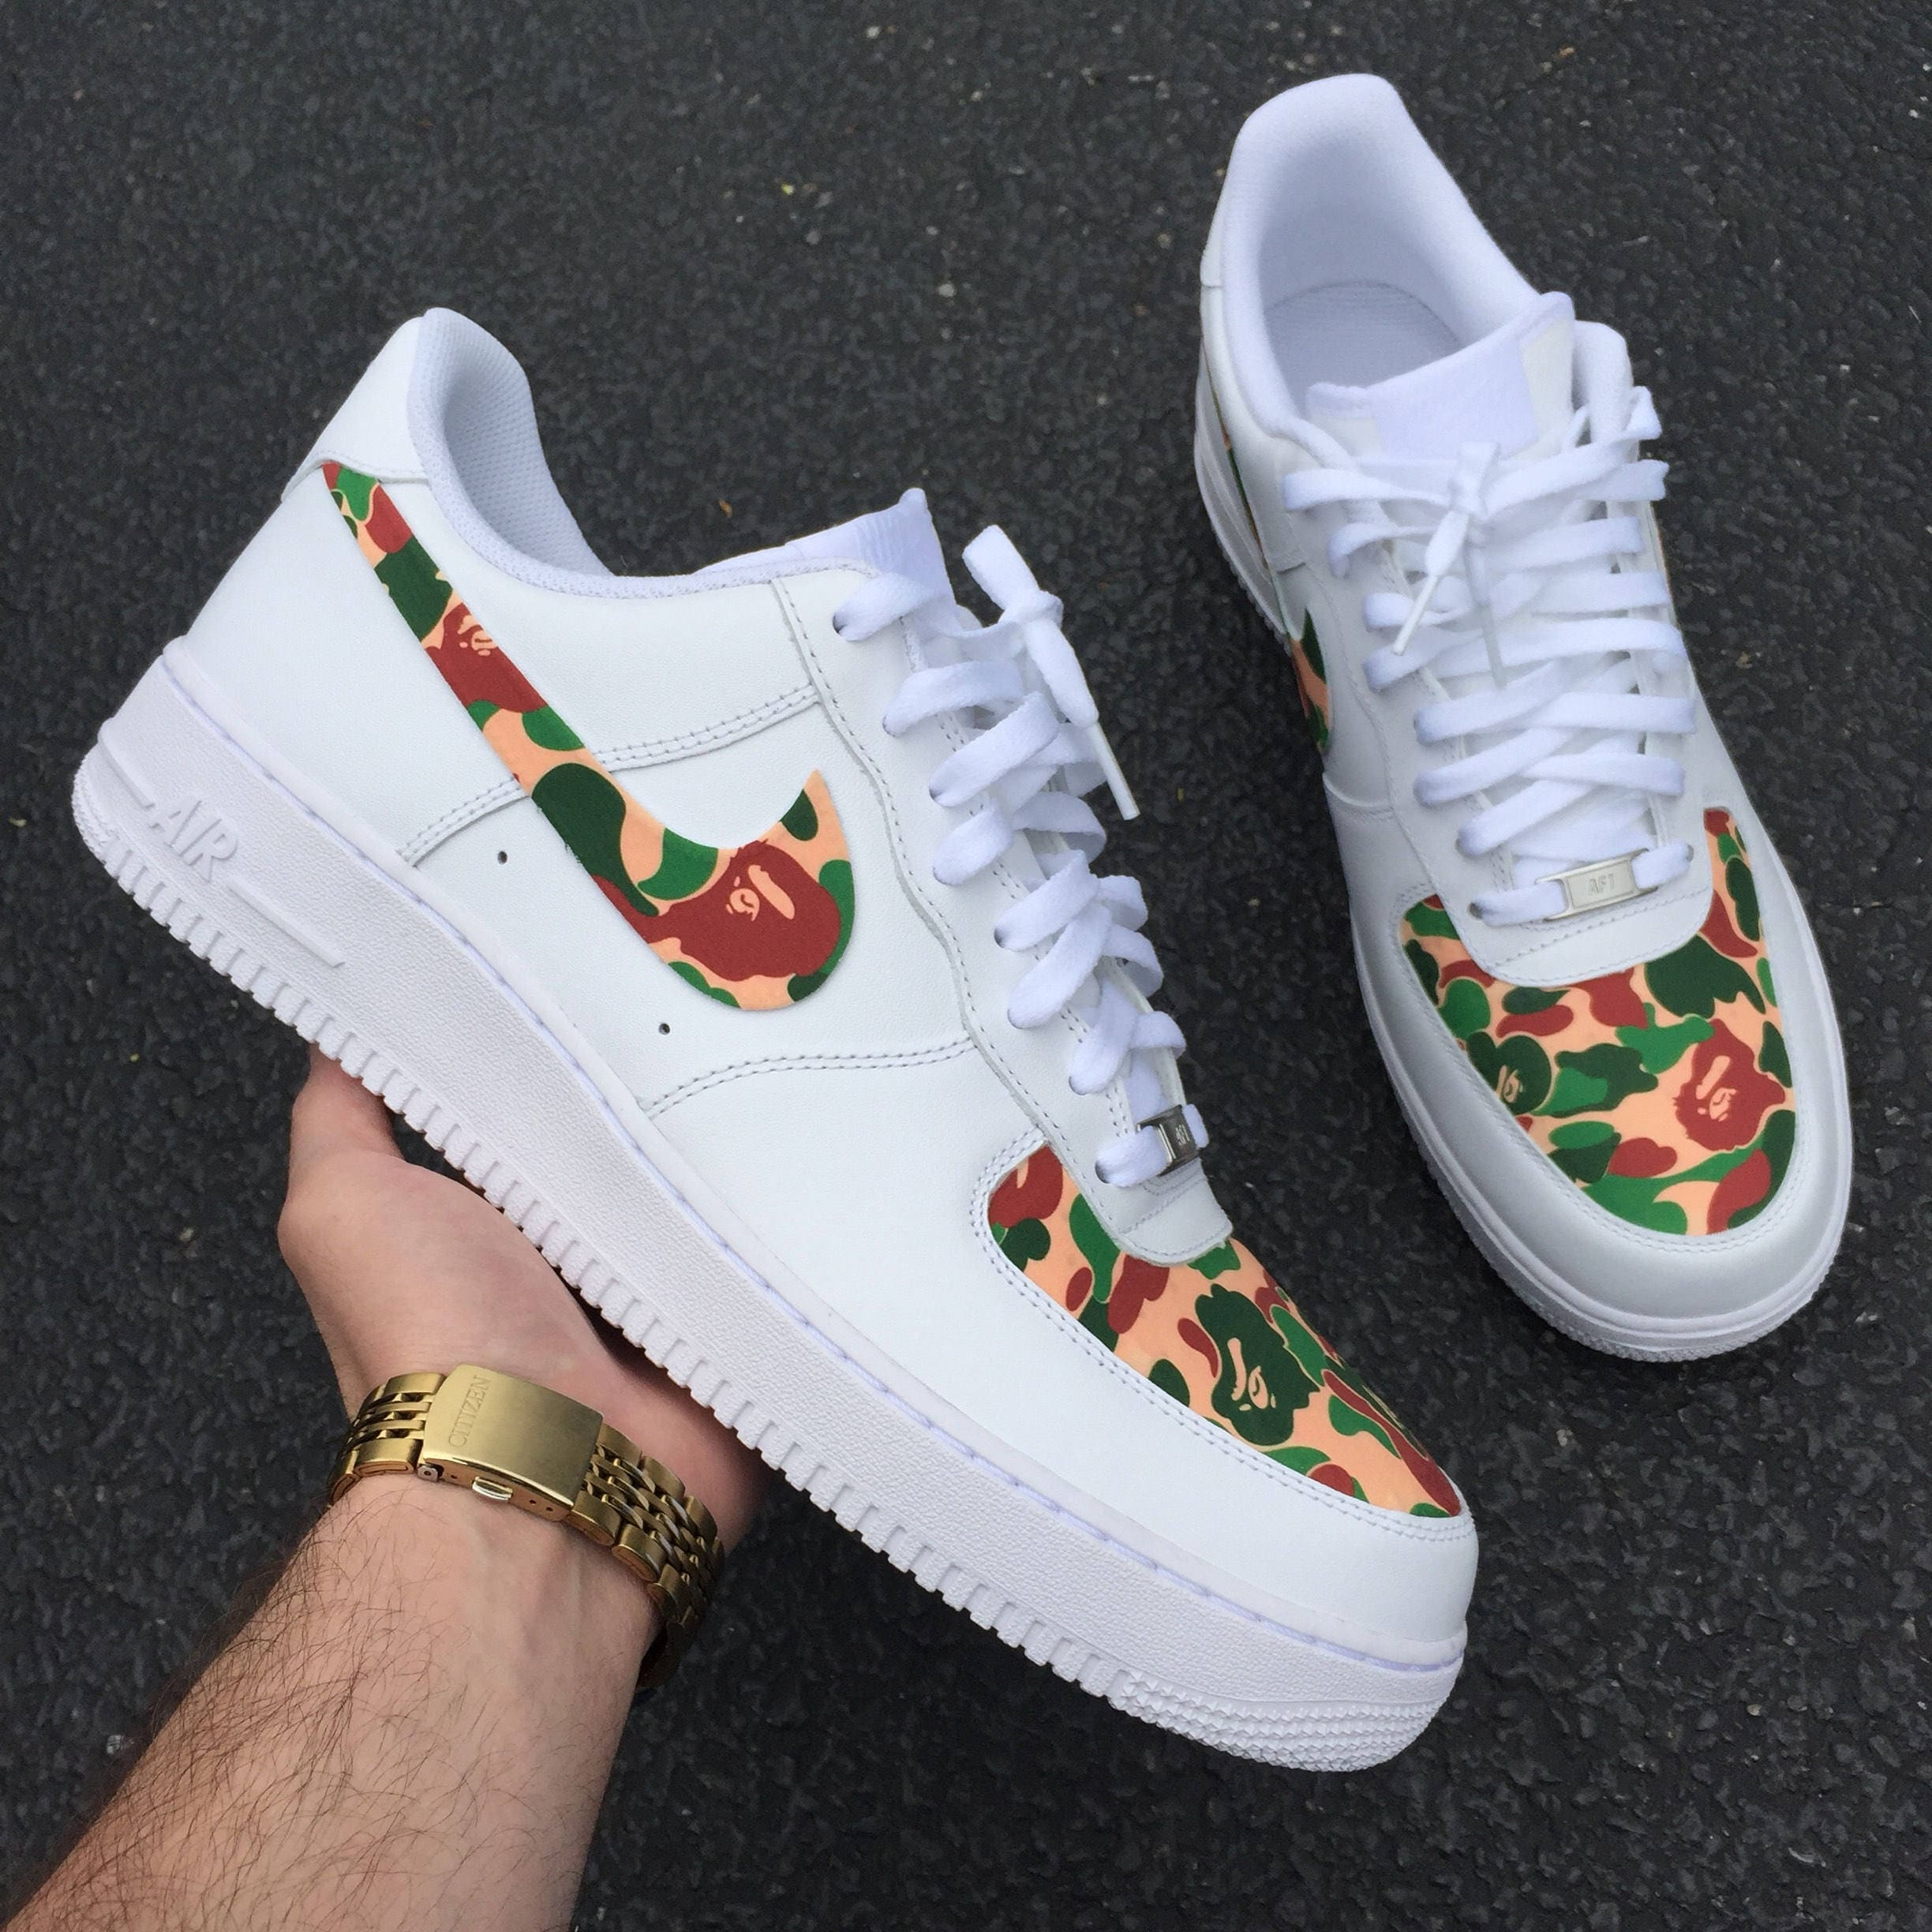 794753d3b53165 Bape Nike Air Force Green Red White